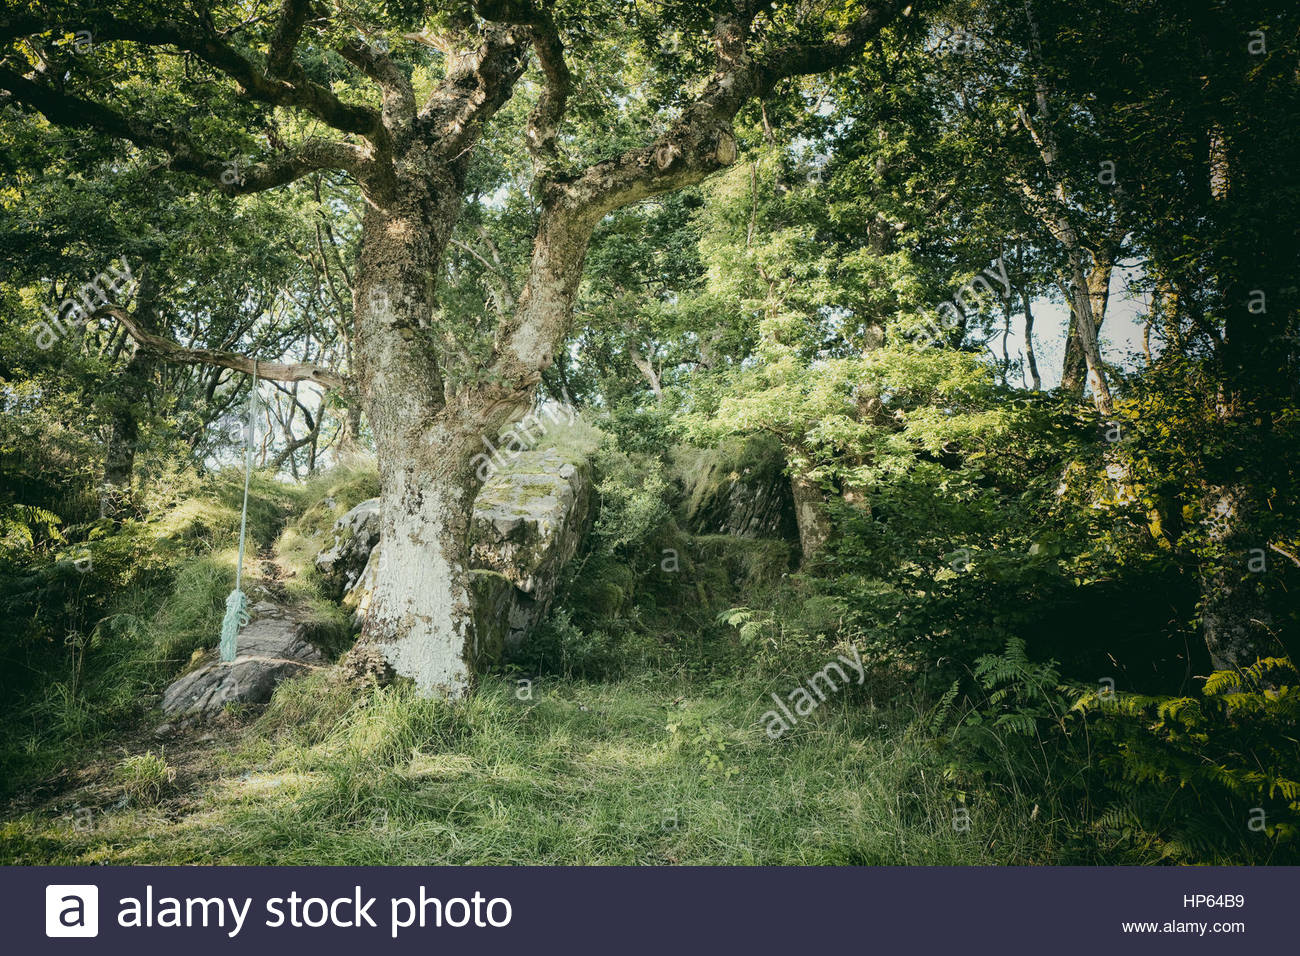 old deciduous forest stockfotos old deciduous forest bilder alamy. Black Bedroom Furniture Sets. Home Design Ideas